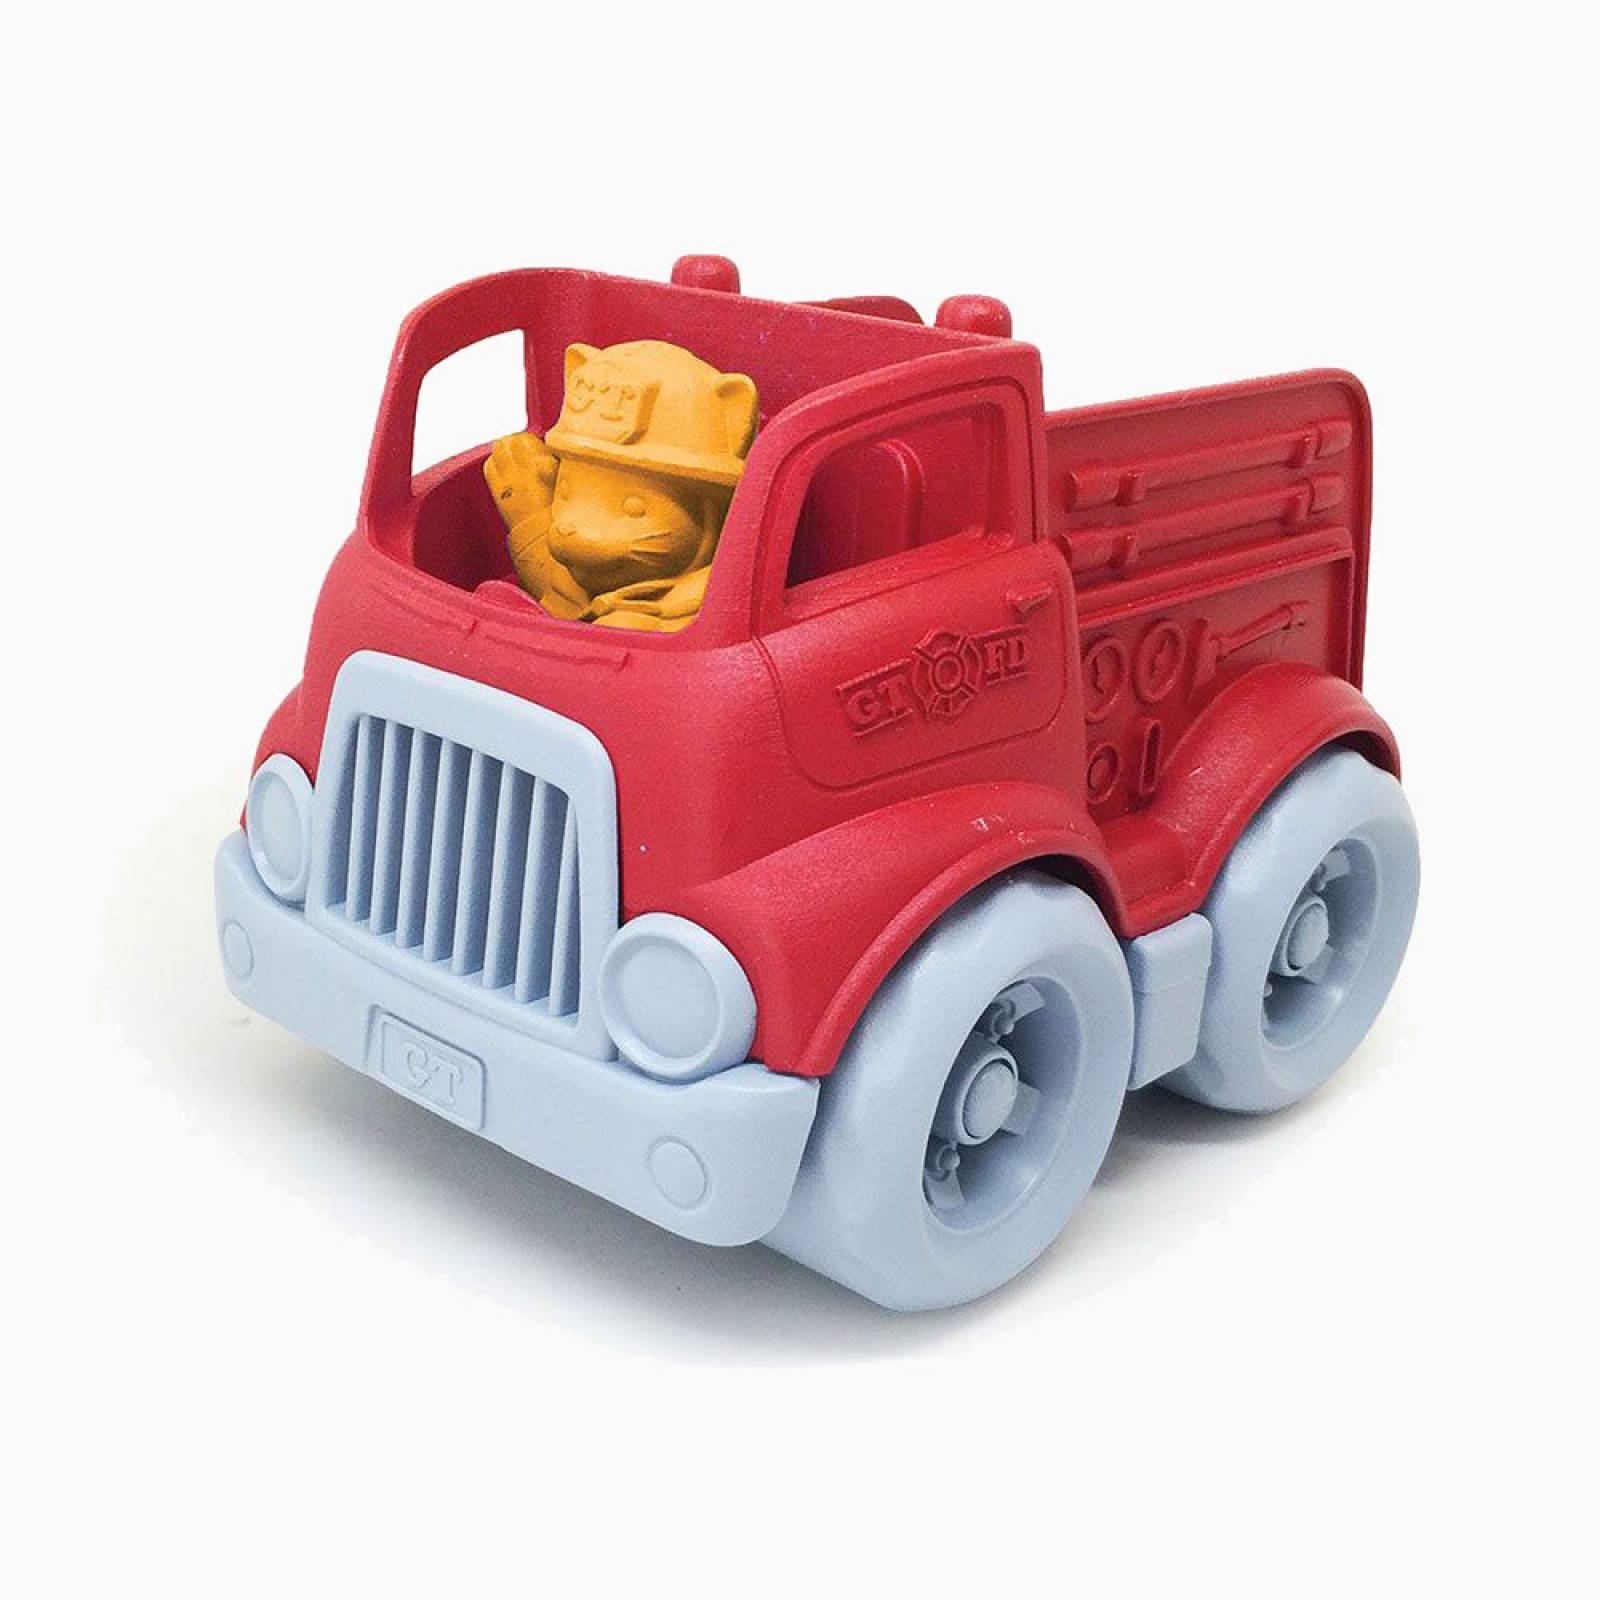 Small Fire Engine By Green Toys - Recycled Plastic 2+ thumbnails